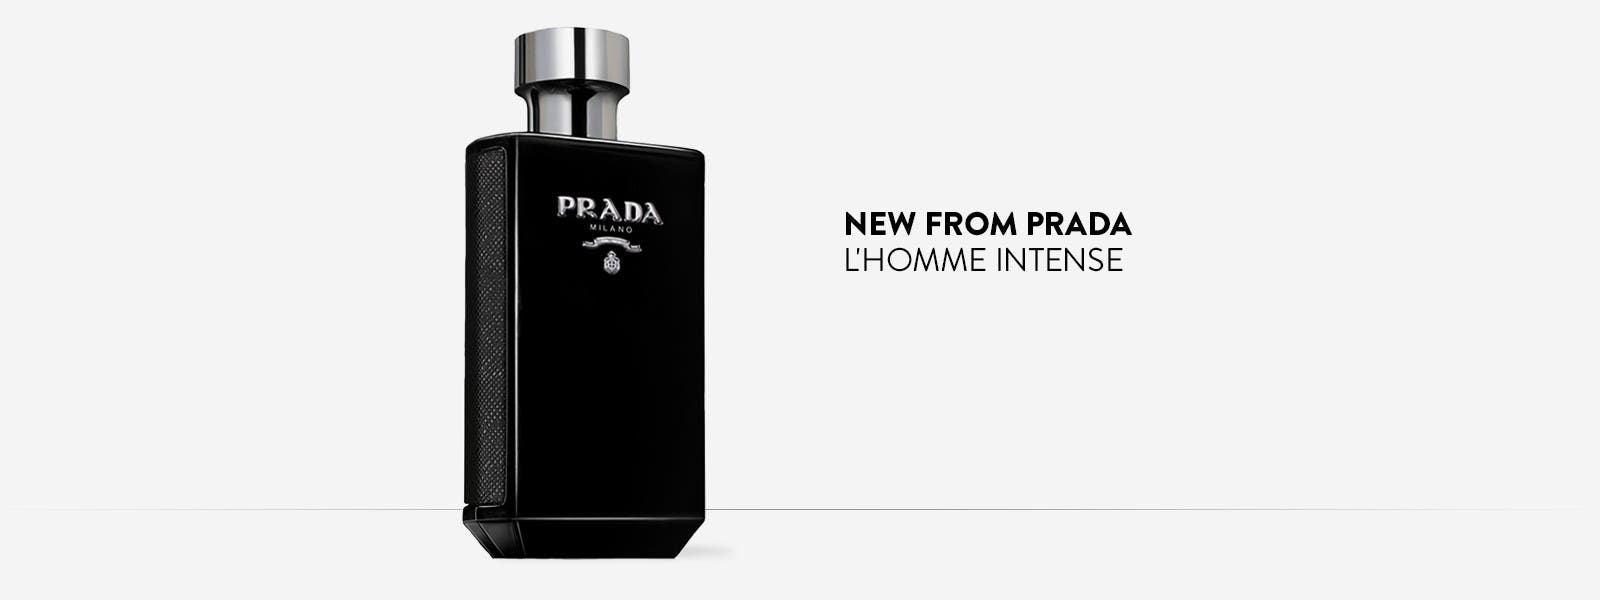 New from Prada: L'Homme Intense.